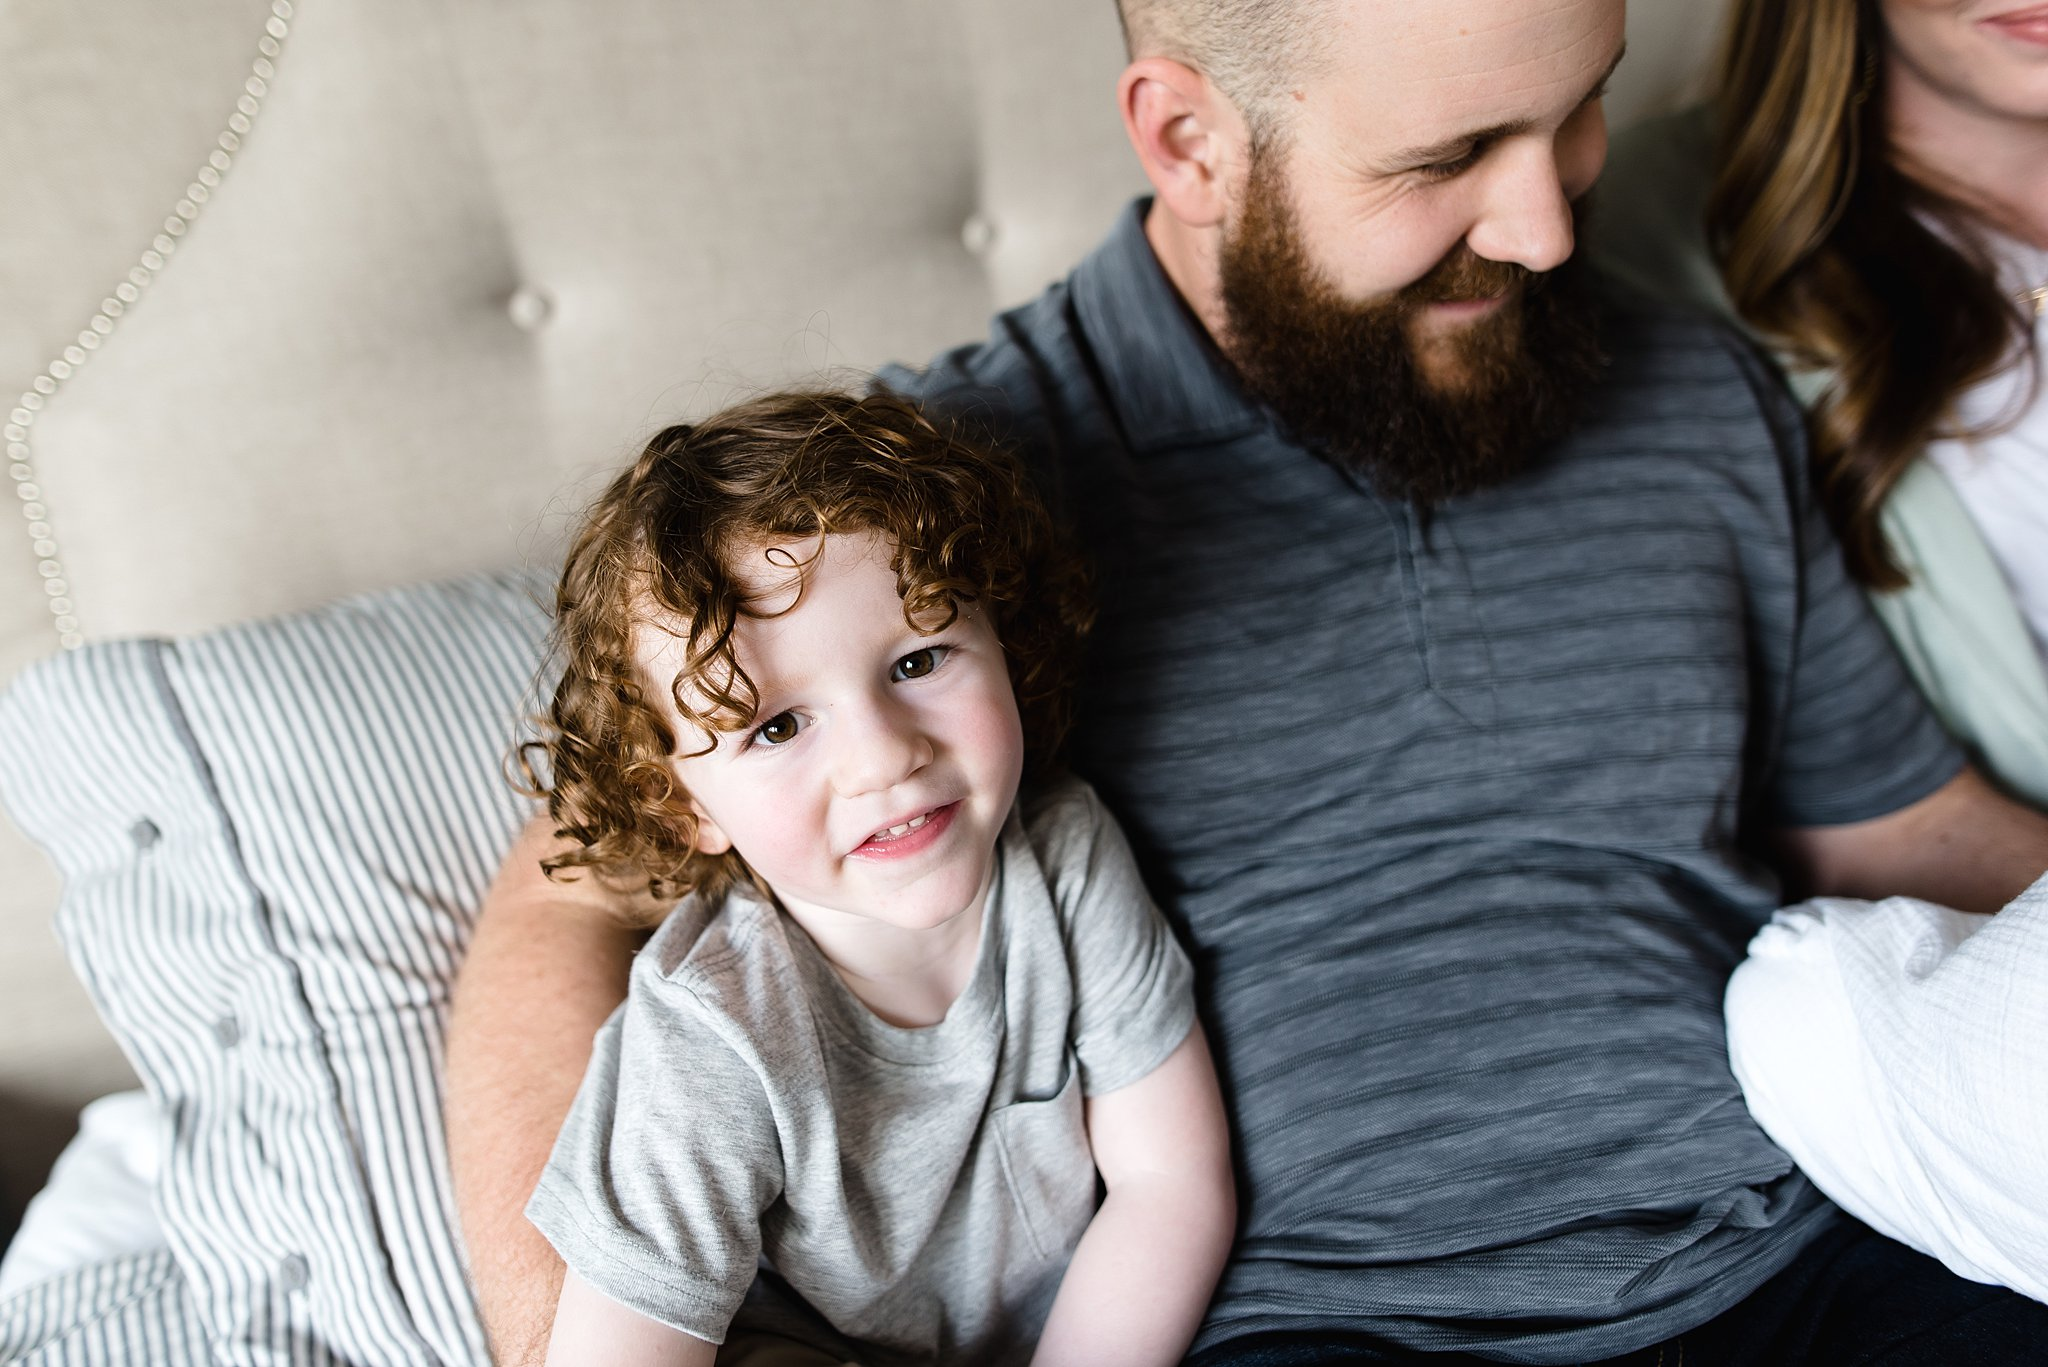 a boy looks up at the camera snuggled next to his dad